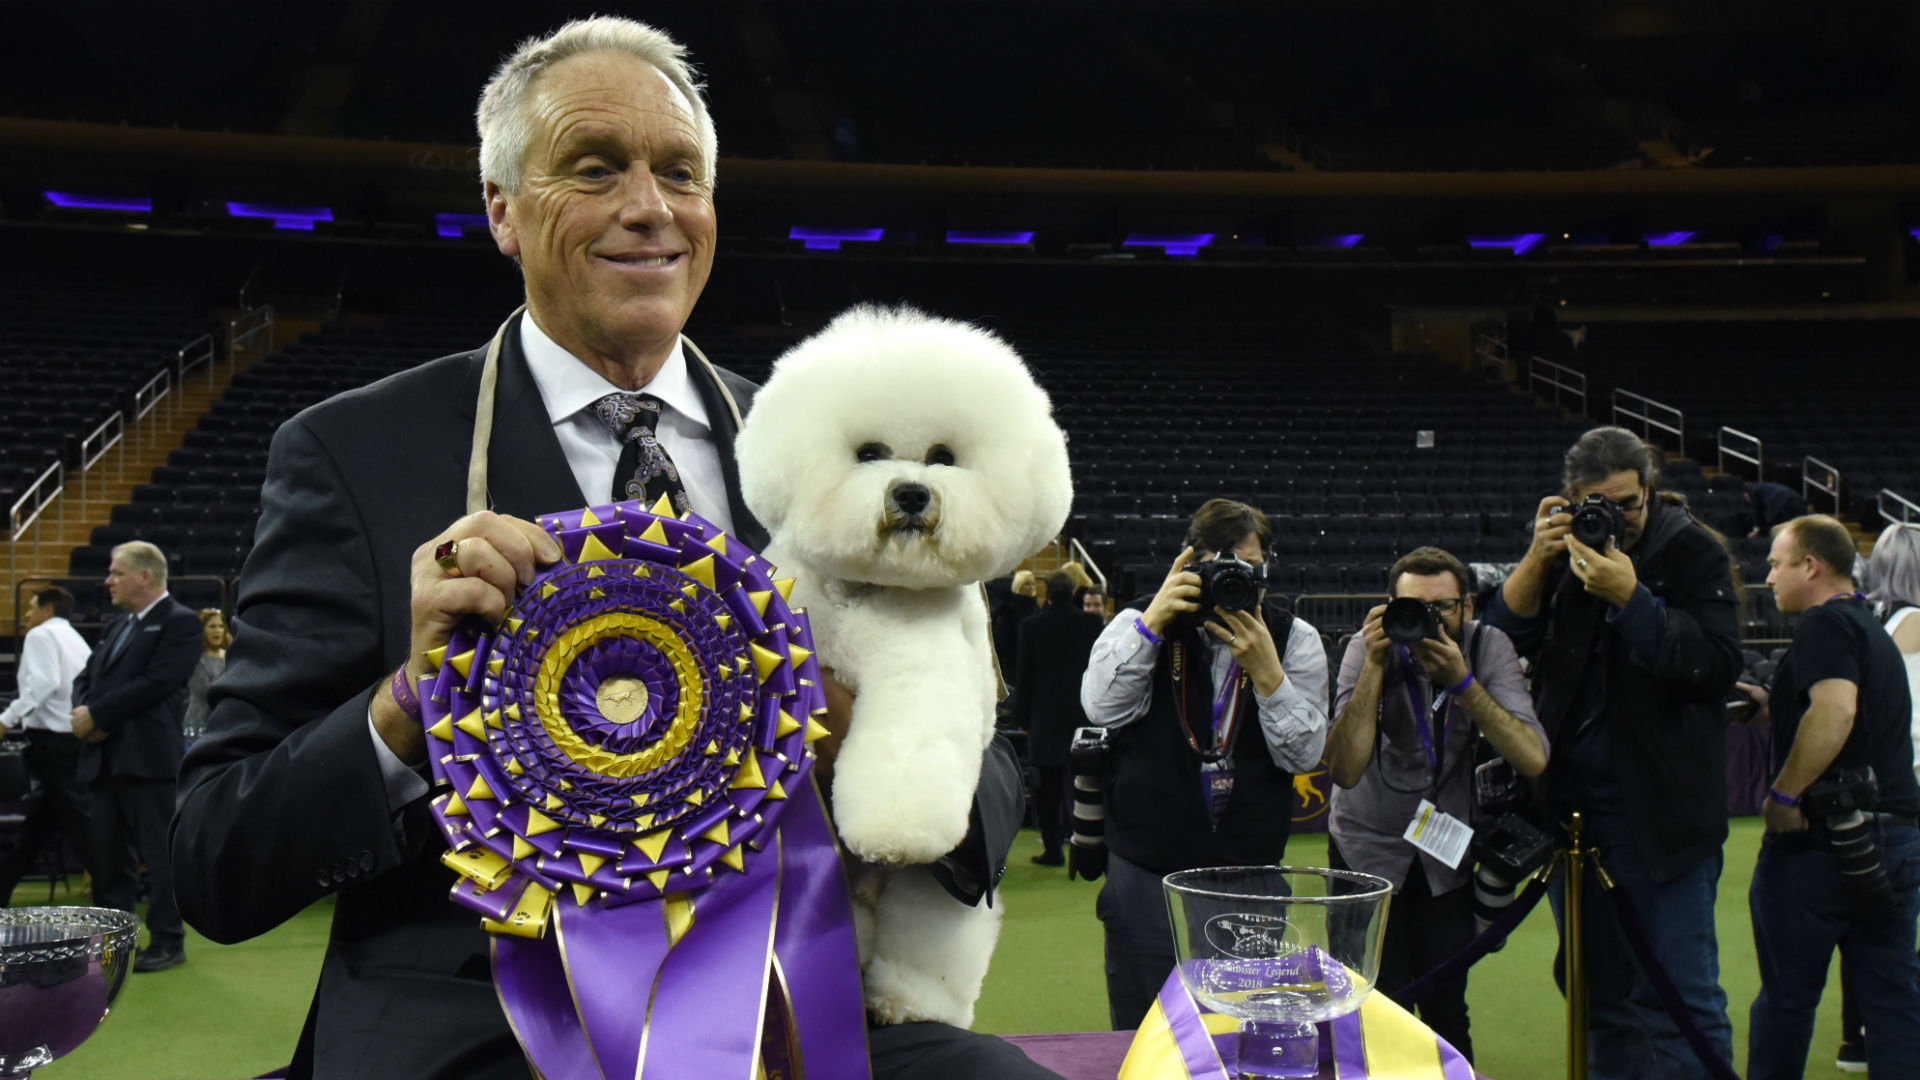 Westminster Dog Show 2019 Dates Tv Schedule Live Stream List Of